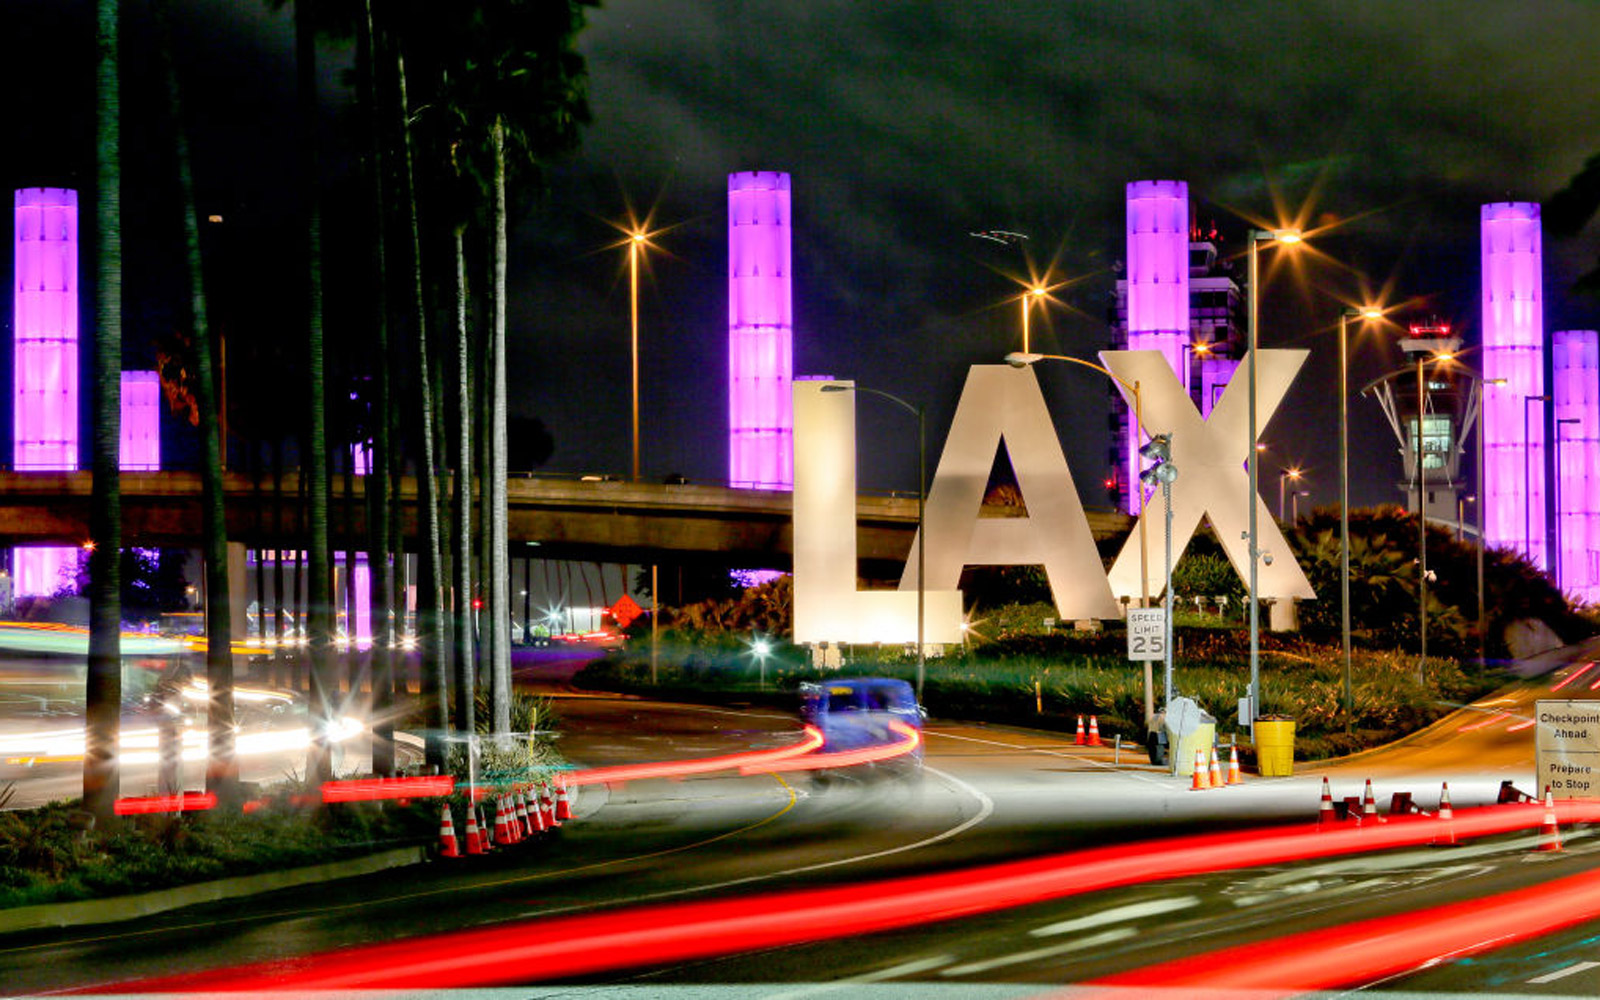 LOS ANGELES, CA - FEBRUARY 06: Los Angeles International Airport LAX Sign on February 06, 2017 in Los Angeles, California.  (Photo by FG/Bauer-Griffin/GC Images)